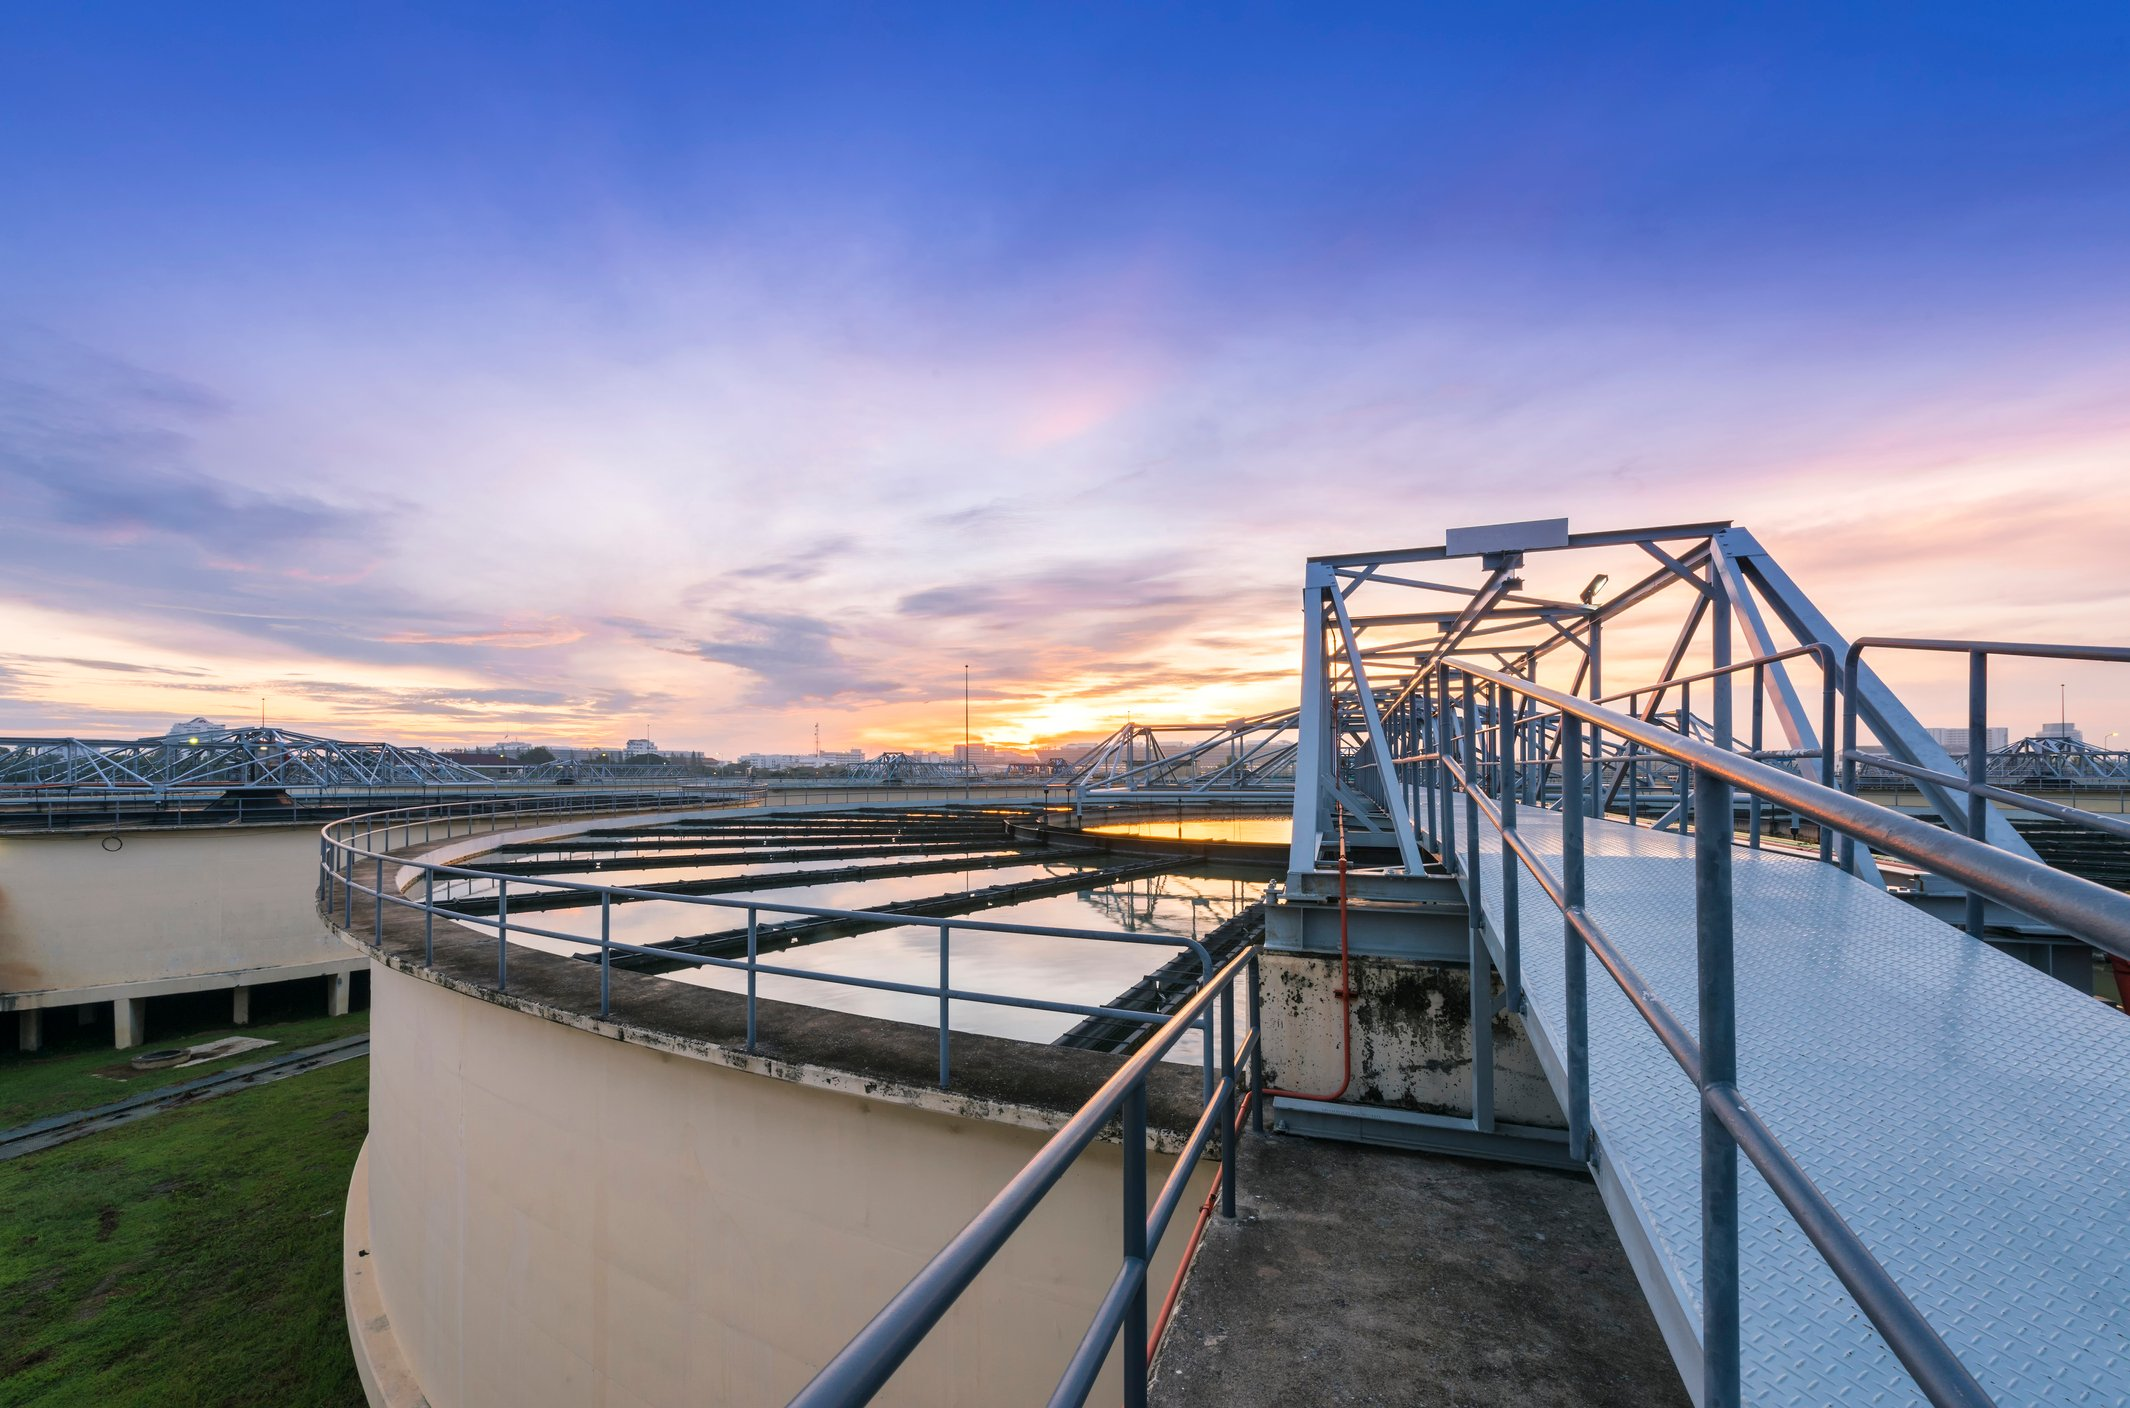 A municipal water purification plant specializes in wastewater recycling